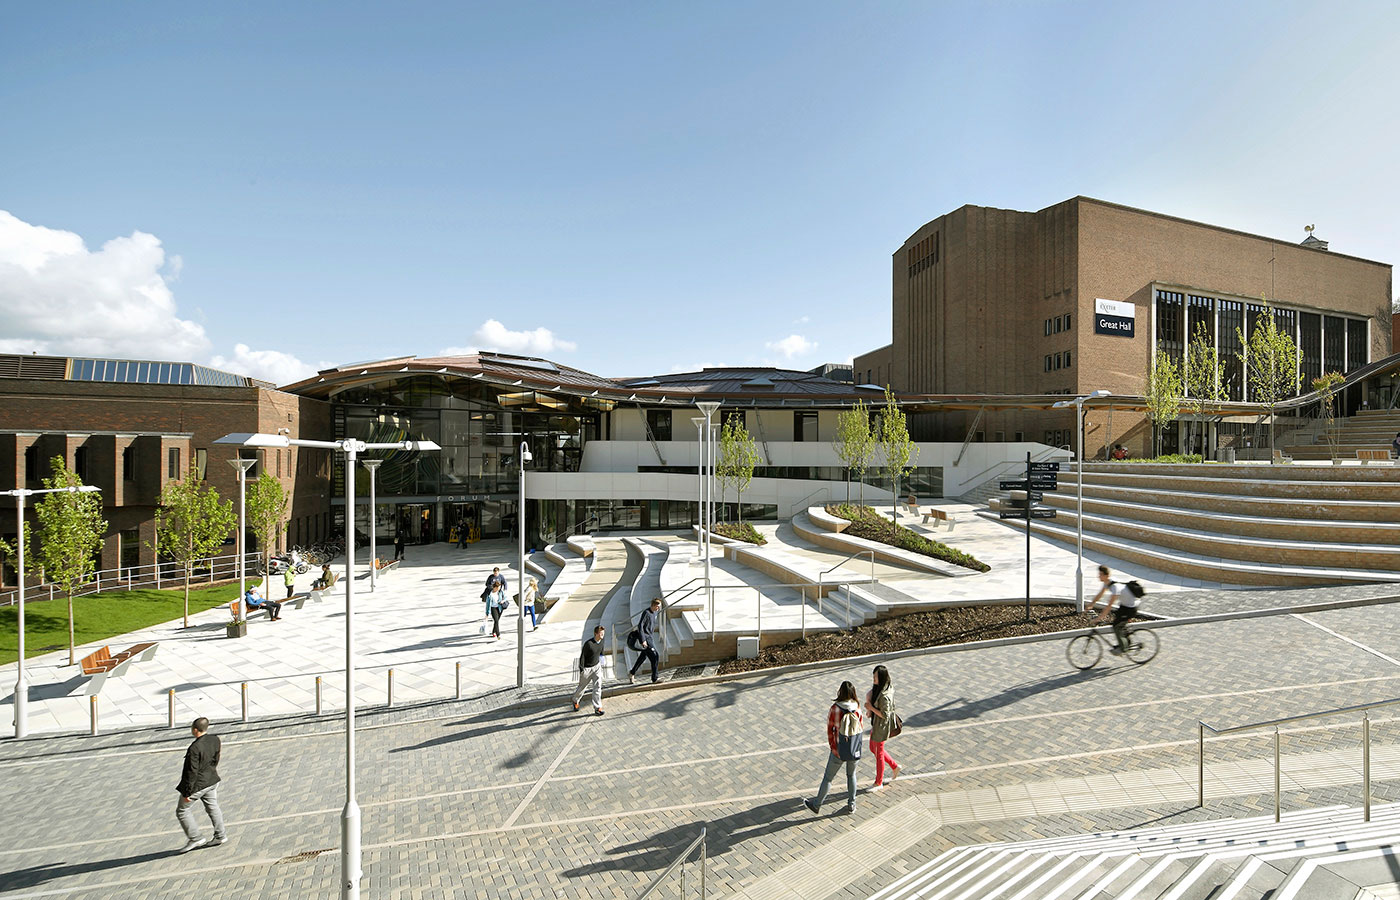 exeter university to have snow slope for one day only